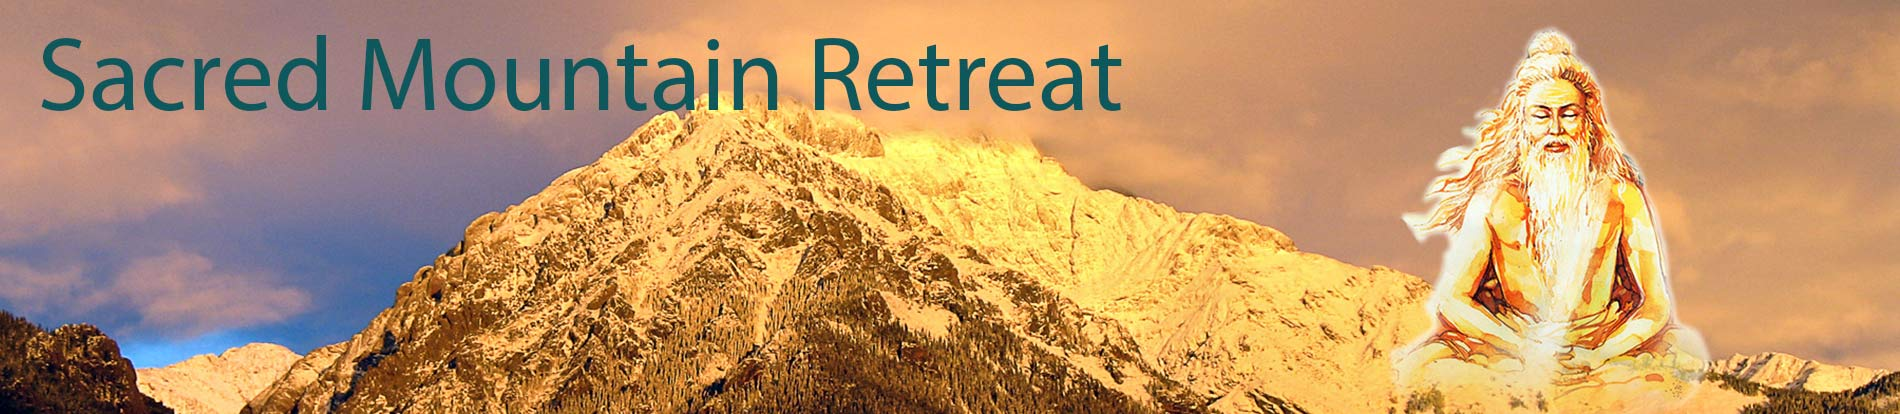 Sacred Mountain Retreat